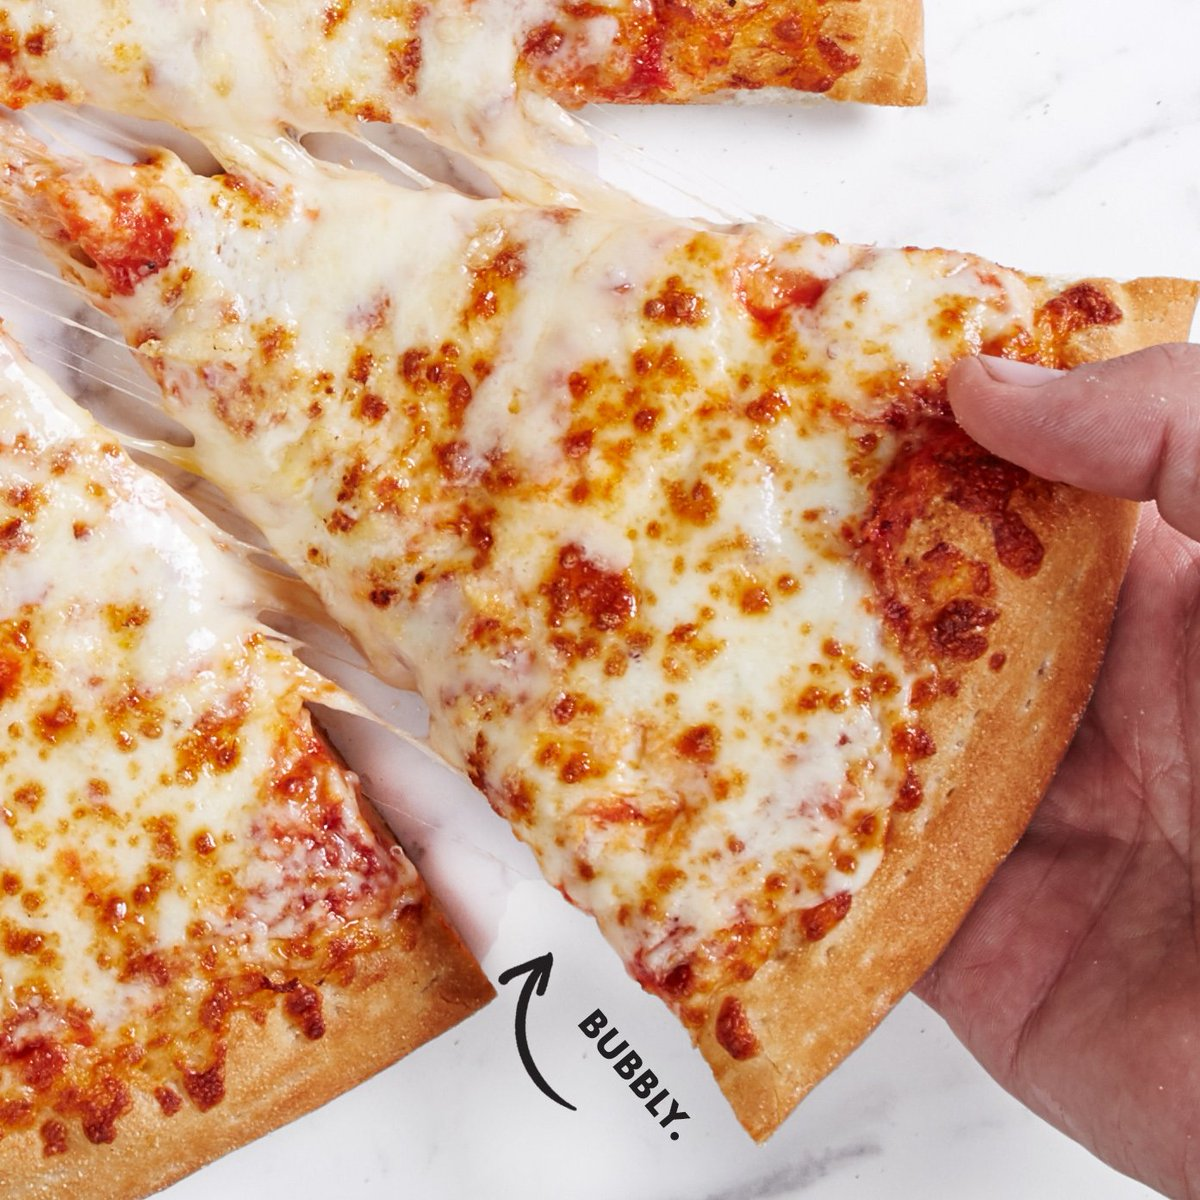 Ginos Pizza على تويتر Just Look At That Cheese It Just Doesnt